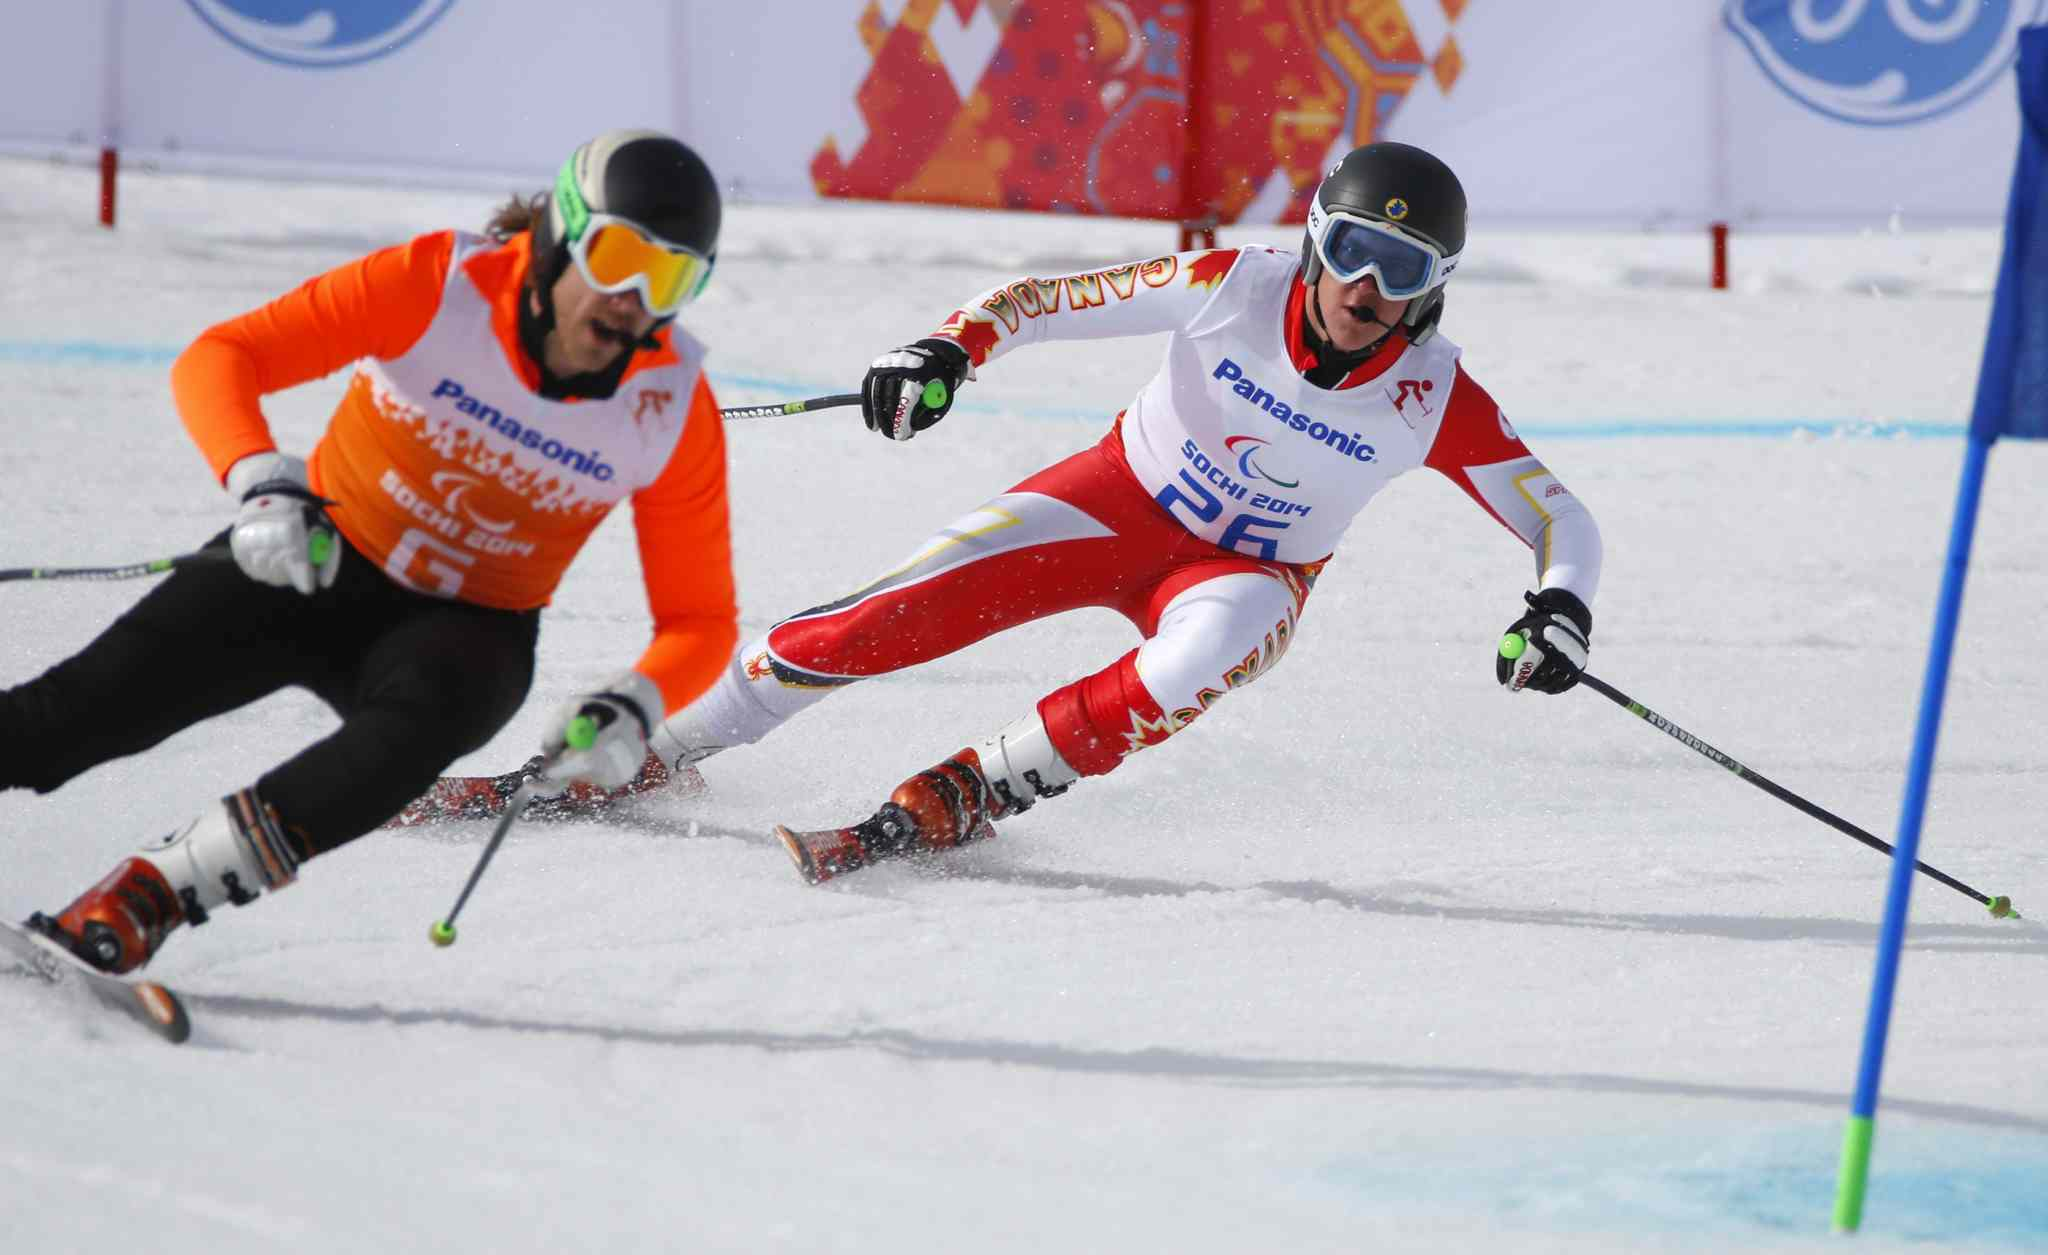 Mac Marcoux of Canada, right, and his guide Robin Femy race to win 3rd place in the men's downhill, visually impaired event at the 2014 Winter Paralympic, Saturday, March 8, 2014, in Krasnaya Polyana, Russia.